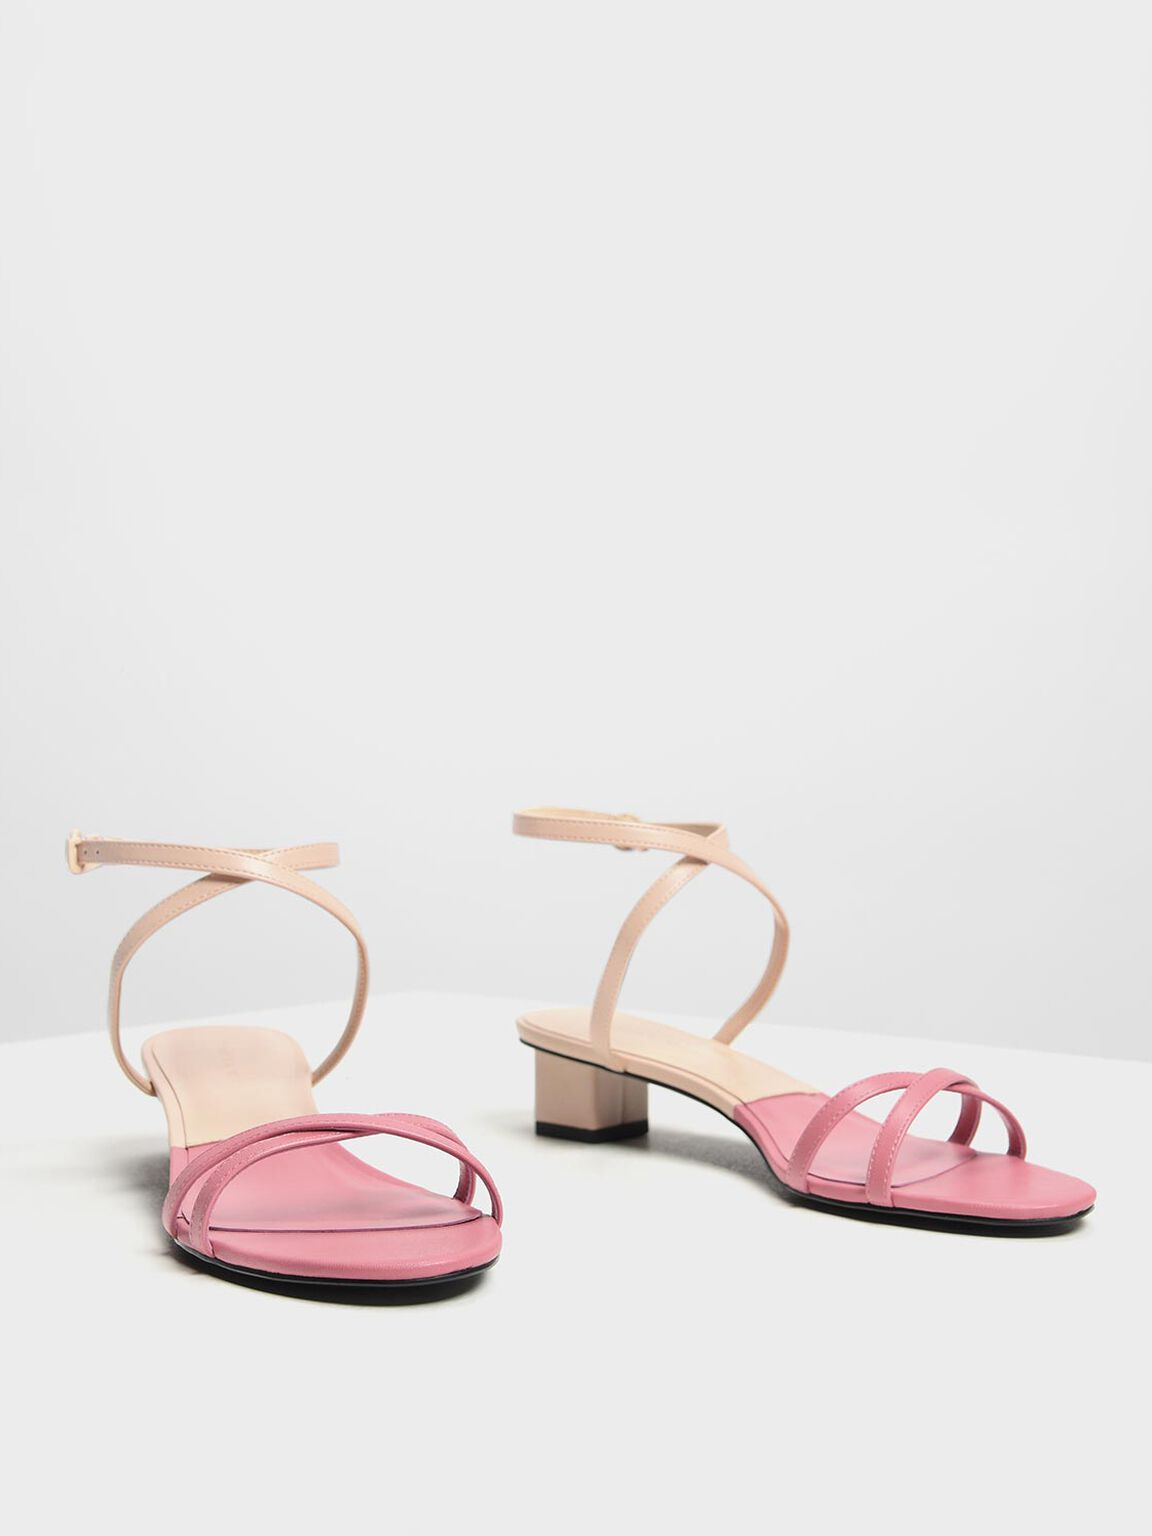 Two-Tone Criss Cross Low Heel Sandals, Pink, hi-res